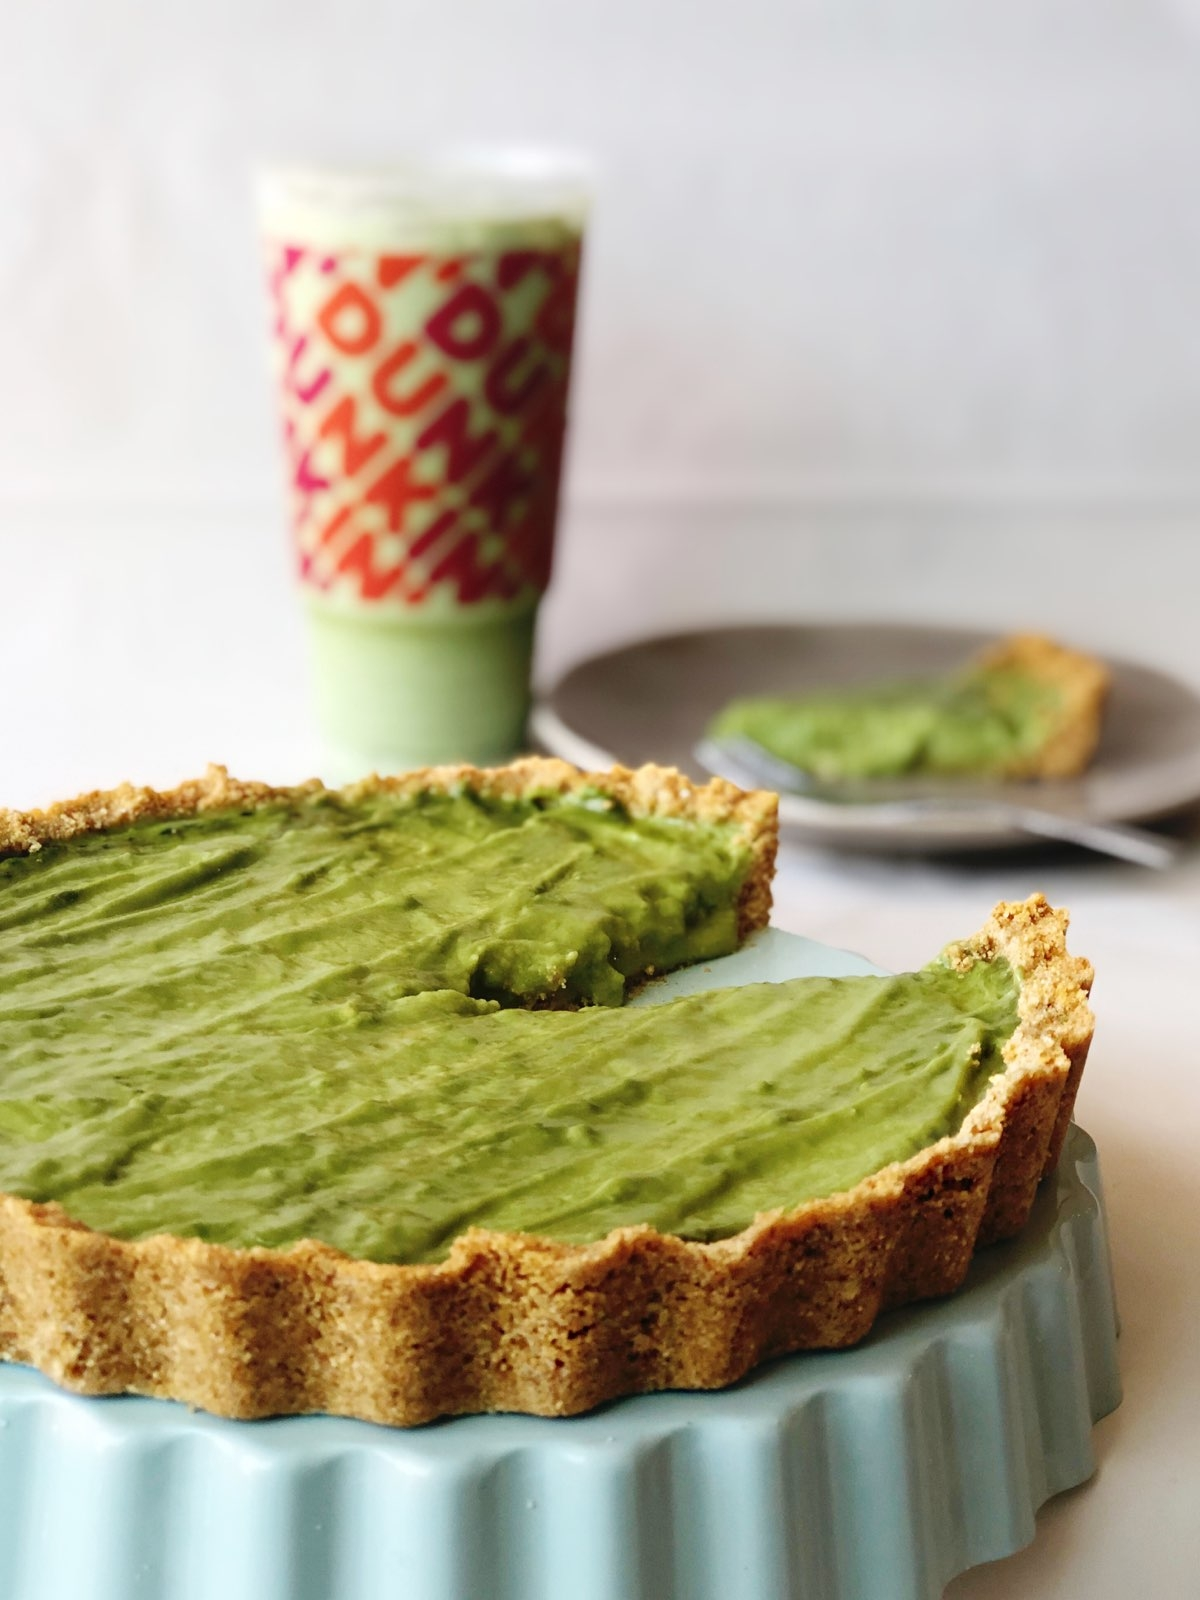 Enjoy a Slice of Summer with this Matcha Latte Summer Pie Recipe